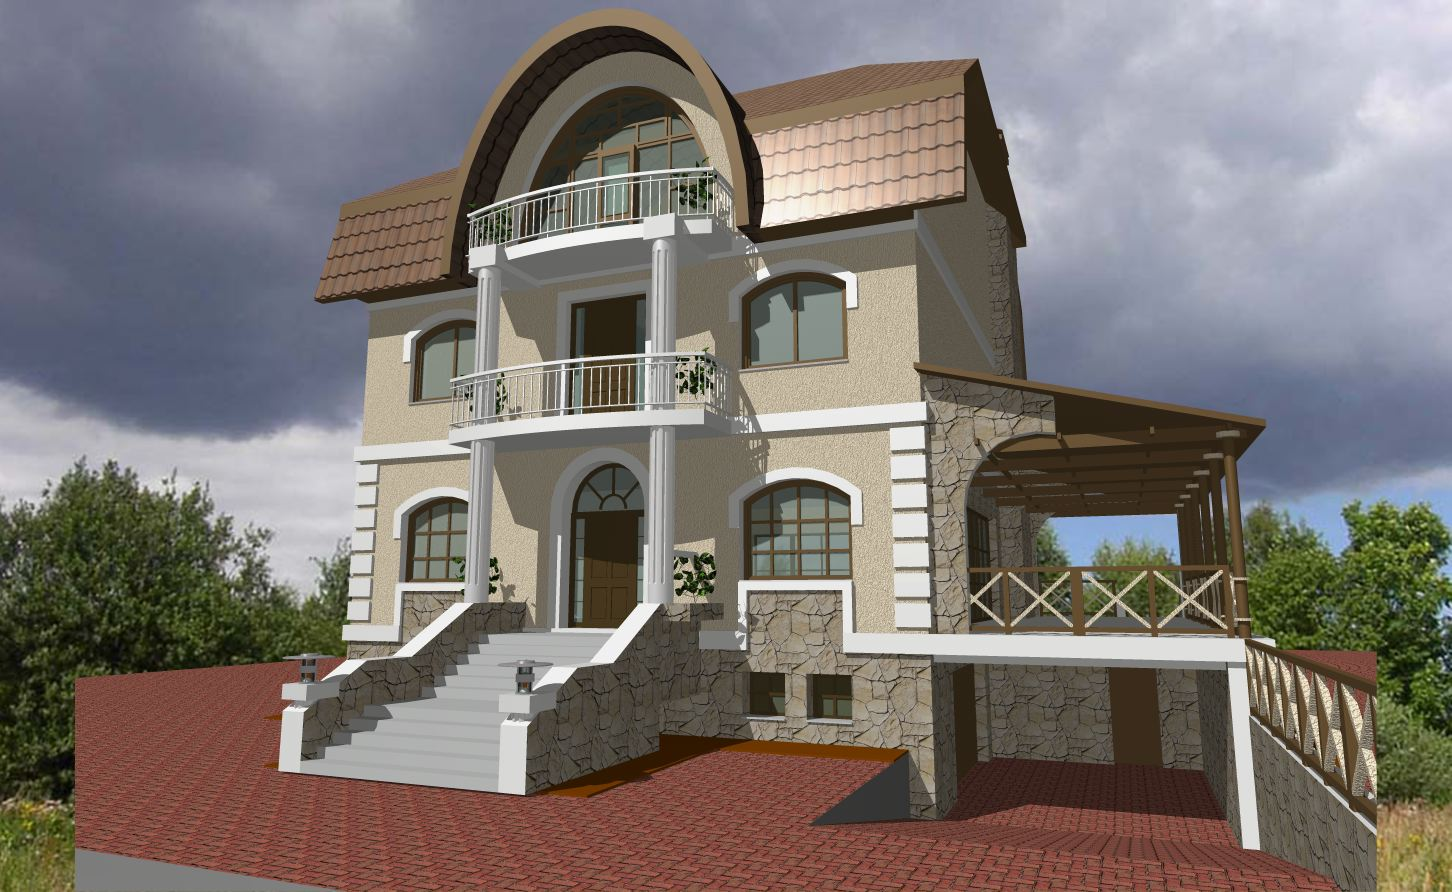 Foundation dezin decor exterior elevations view 39 s - House exterior design ...